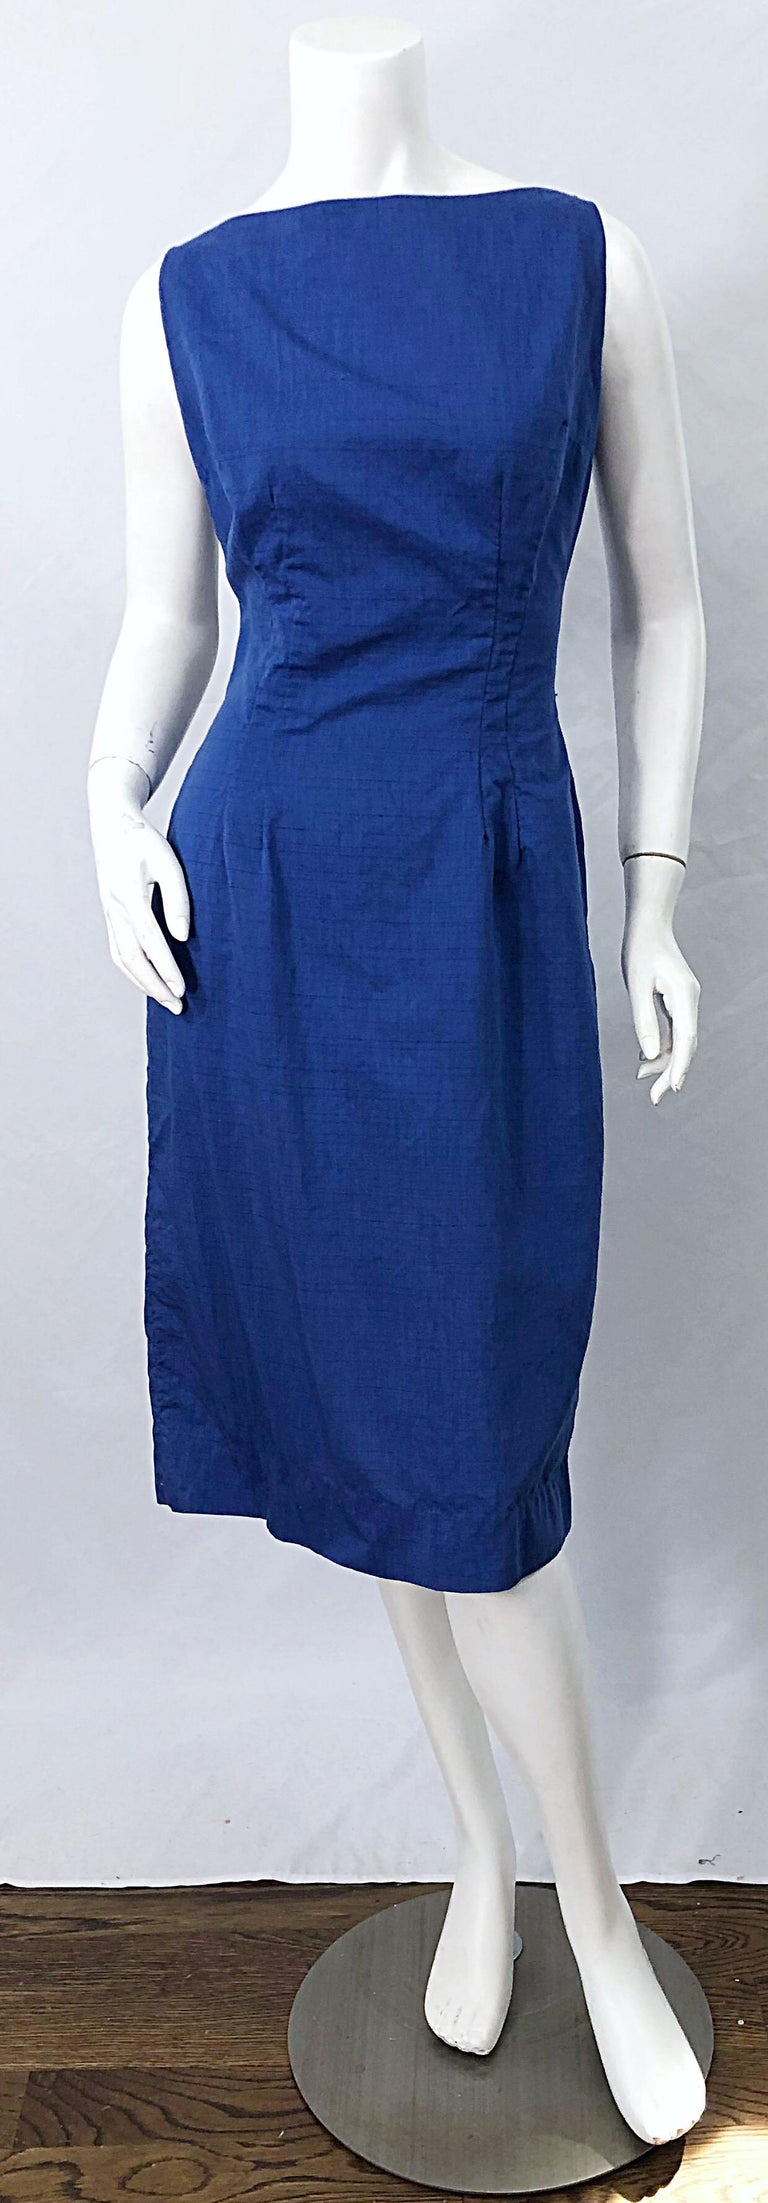 Chic late 1950s cobalt blue cotton sleeveless wiggle dress ! The perfect blue color that looks fabulous on any skin tone. Lightweight soft cotton. Full metal zipper up th eback with hook-and-eye closure. Very good quality with heavy attention to